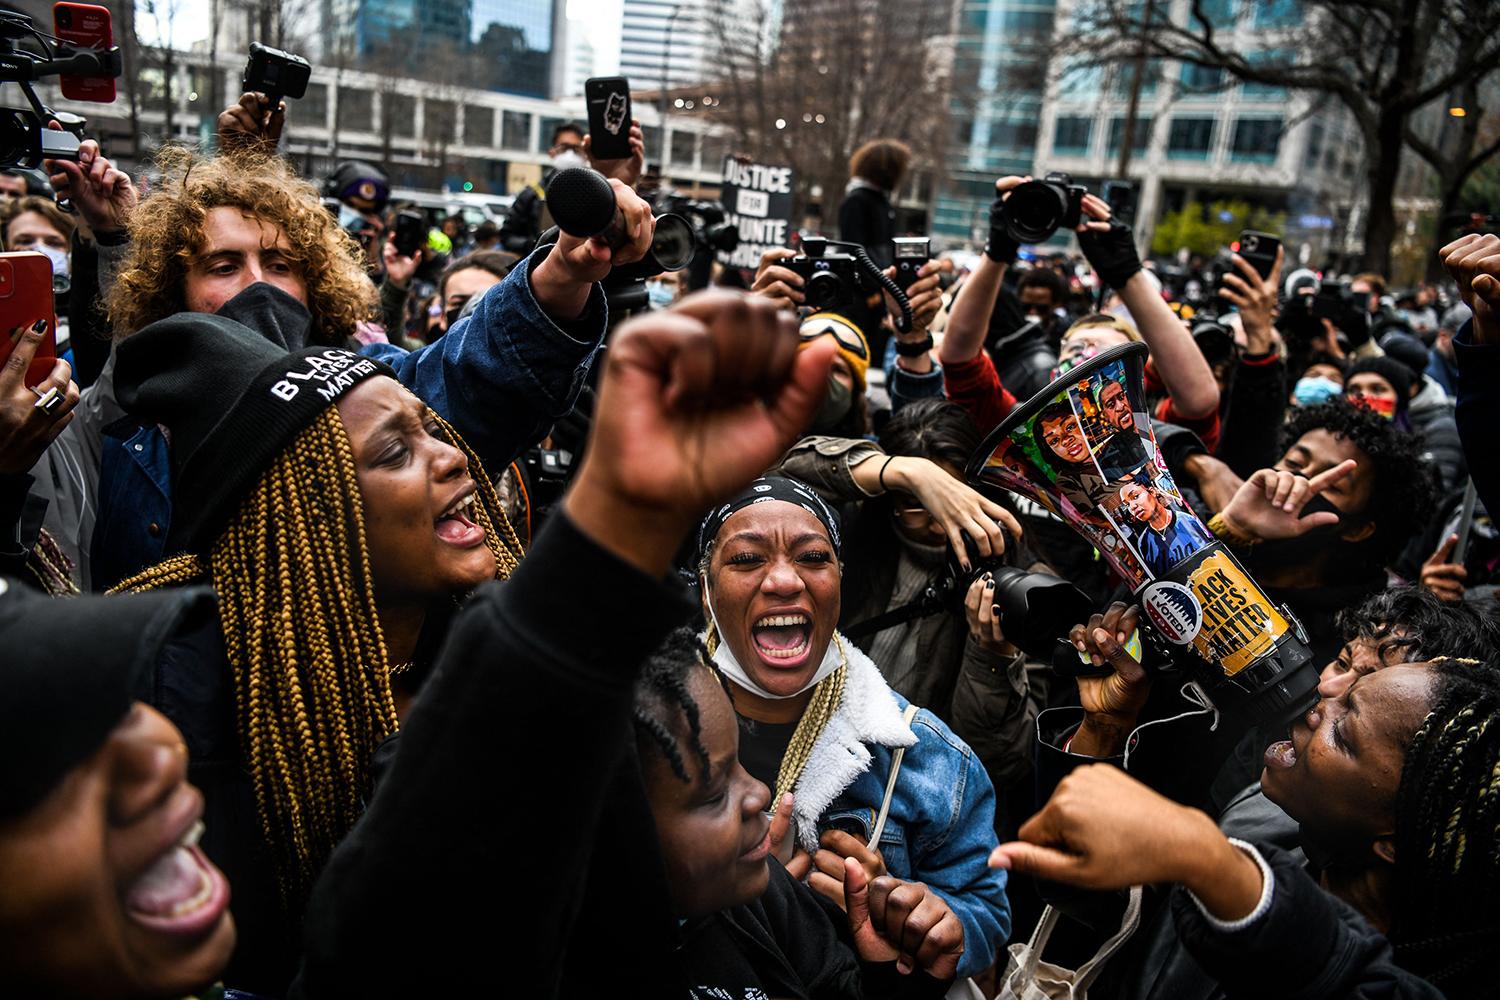 People celebrate as the verdict is announced in the trial of former police officer Derek Chauvin outside the Hennepin County Government Center in Minneapolis, Minnesota, on April 20. Chauvin was convicted of murder and manslaughter in the death of George Floyd. CHANDAN KHANNA/AFP via Getty Images